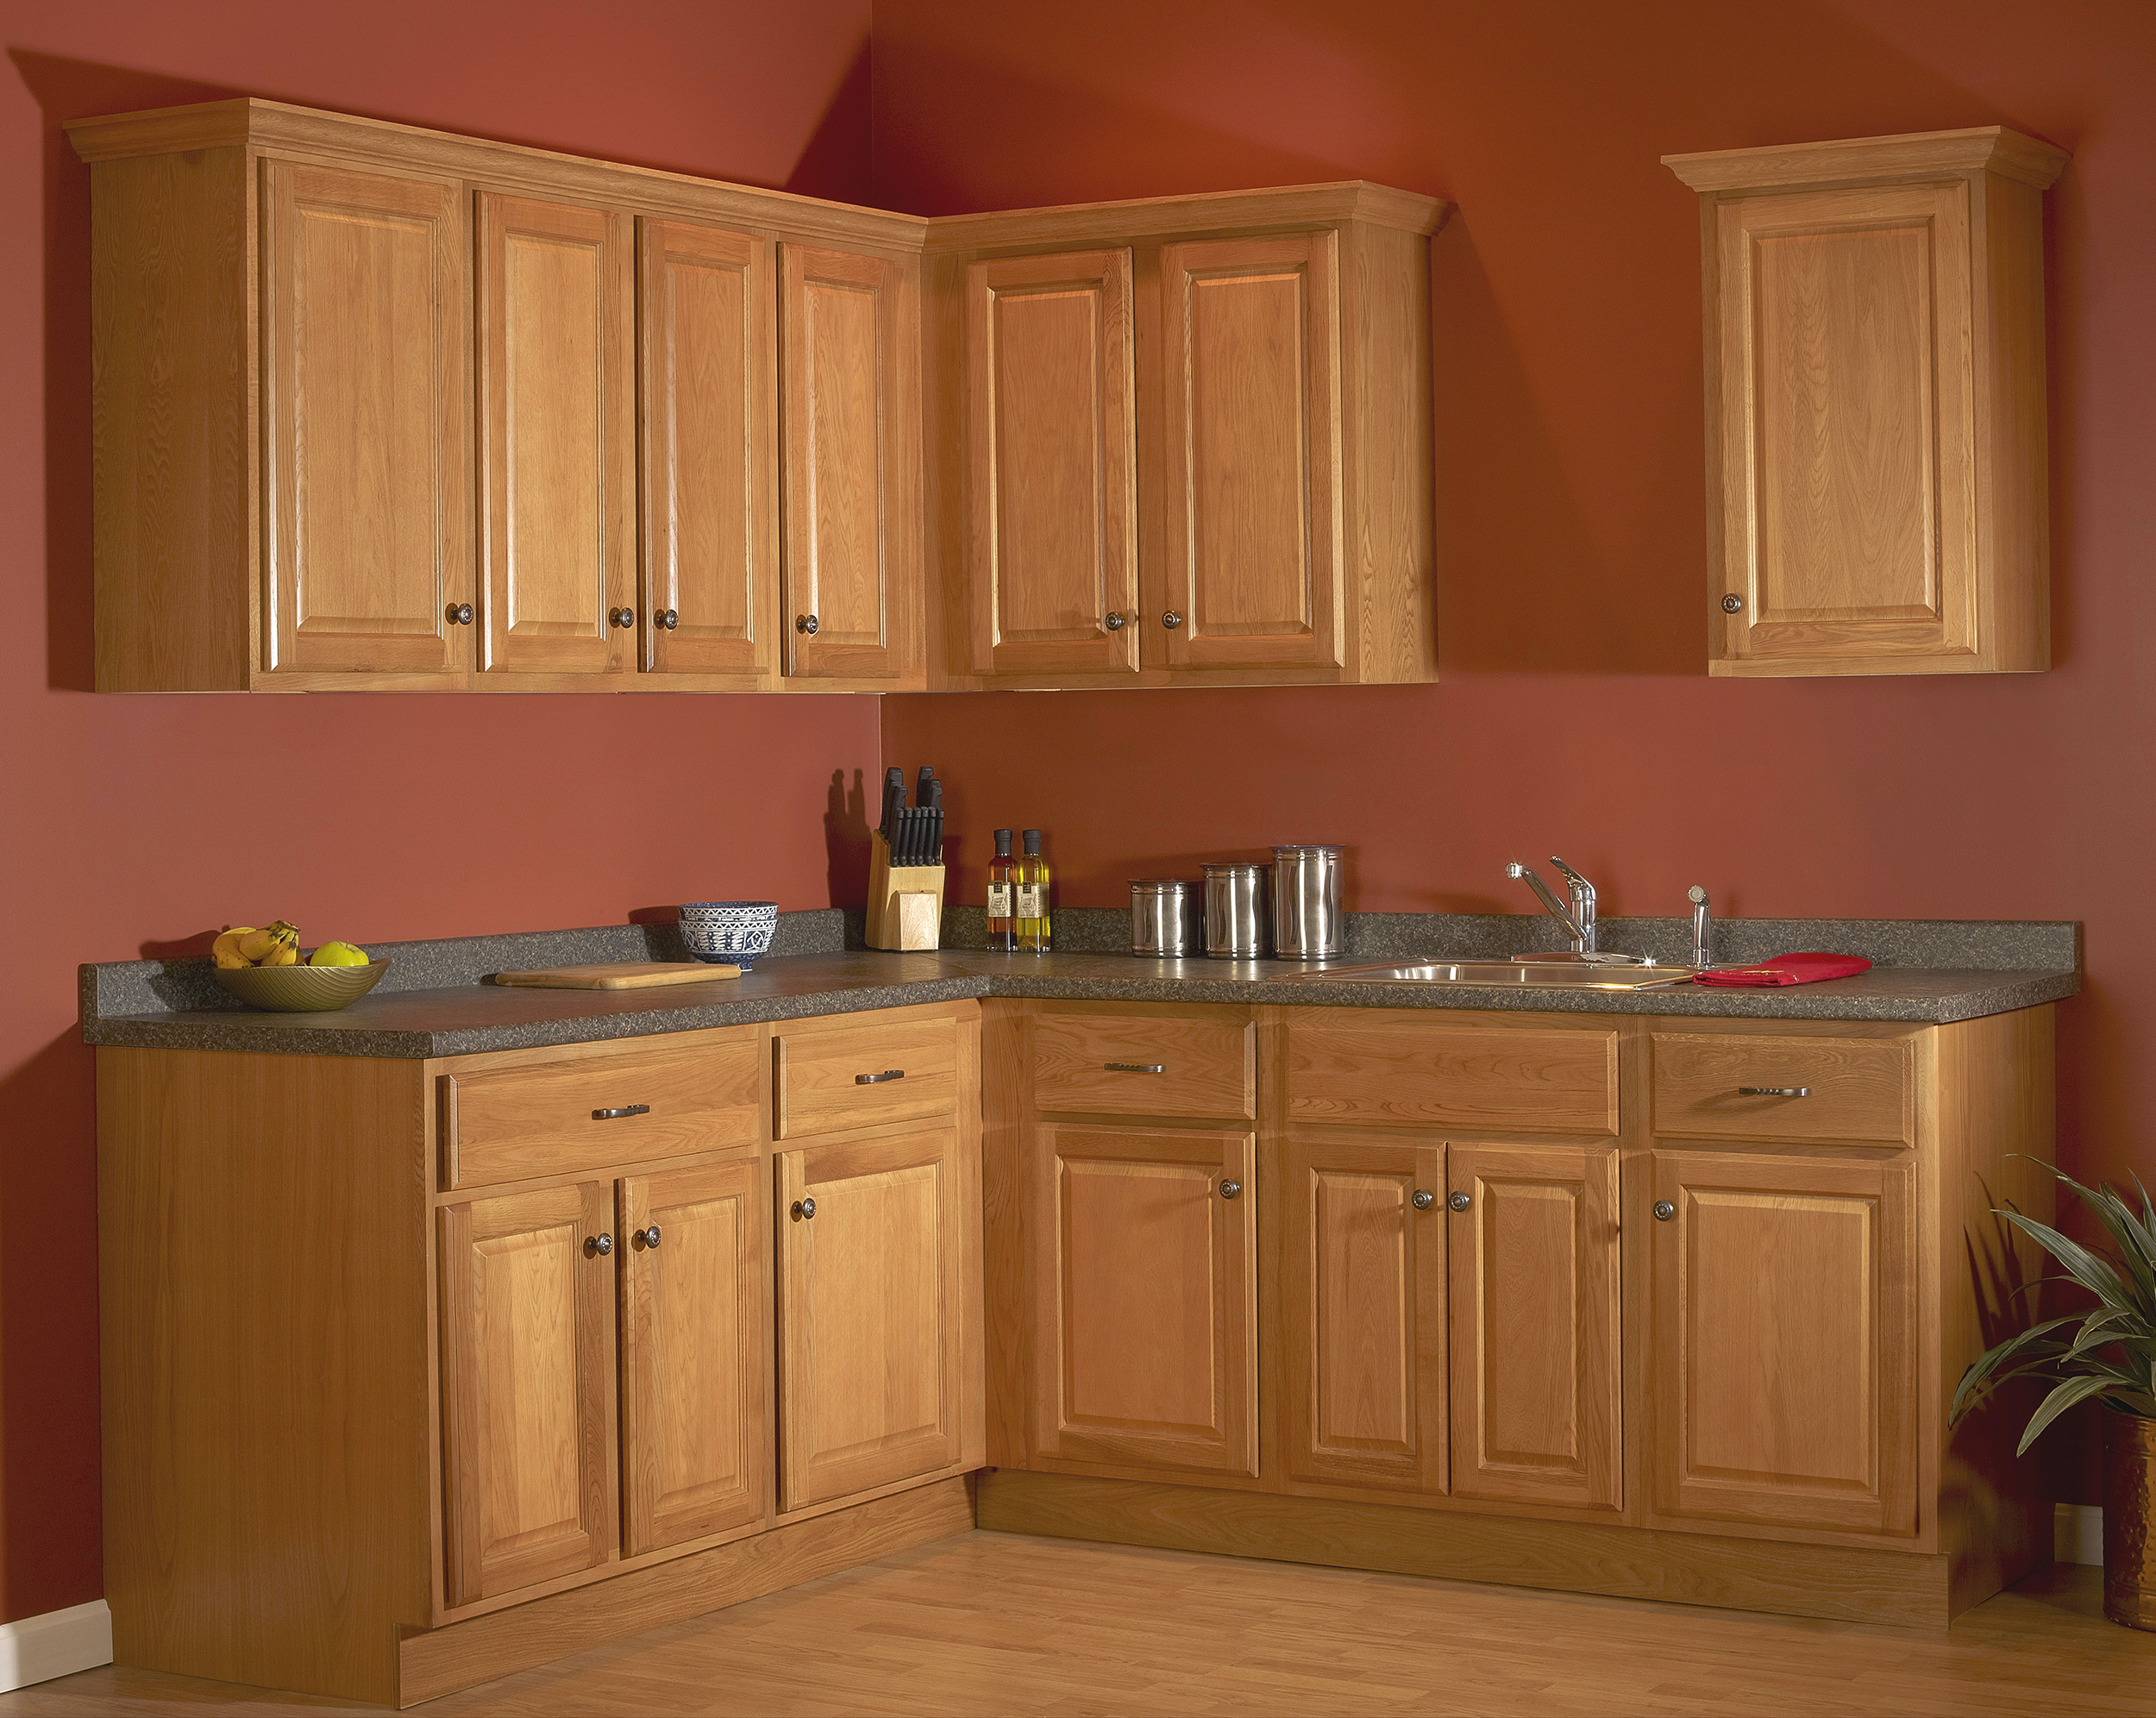 cabinet alluring cabinets new kitchen of tampa kitchens exclusive image luxury designs